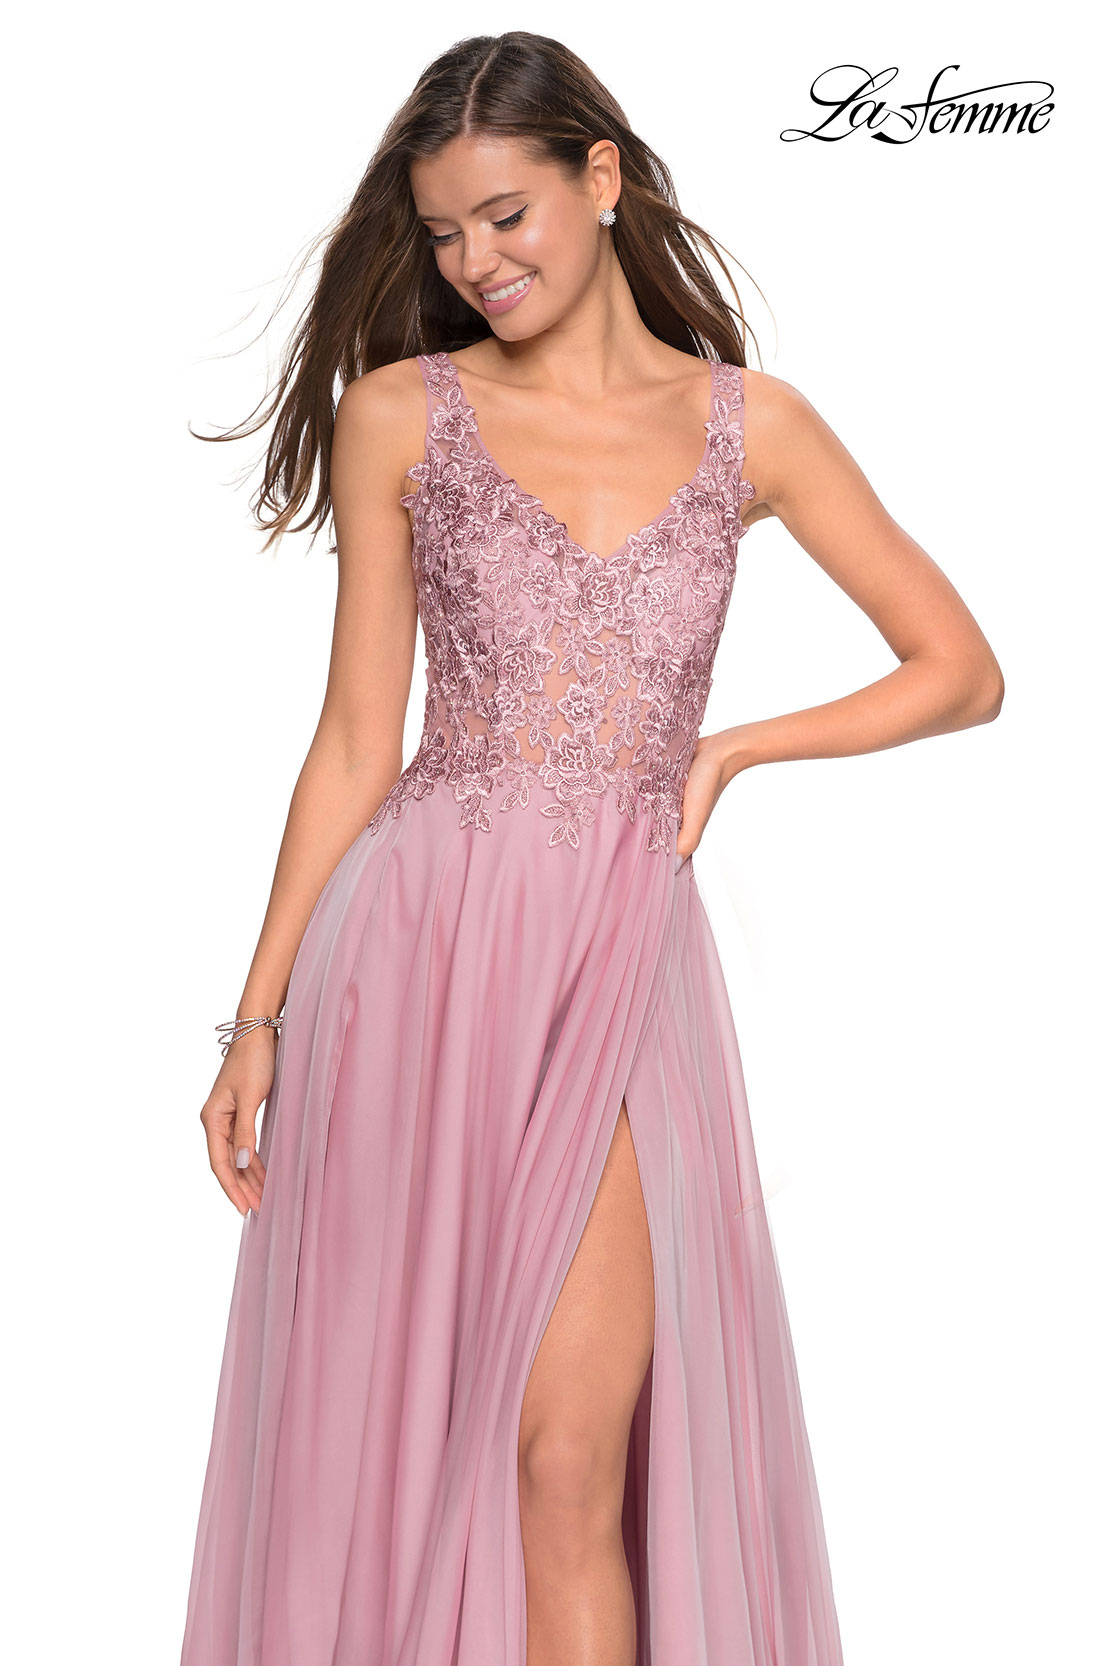 Mauve chiffon prom dress with lace top by La Femme 27751